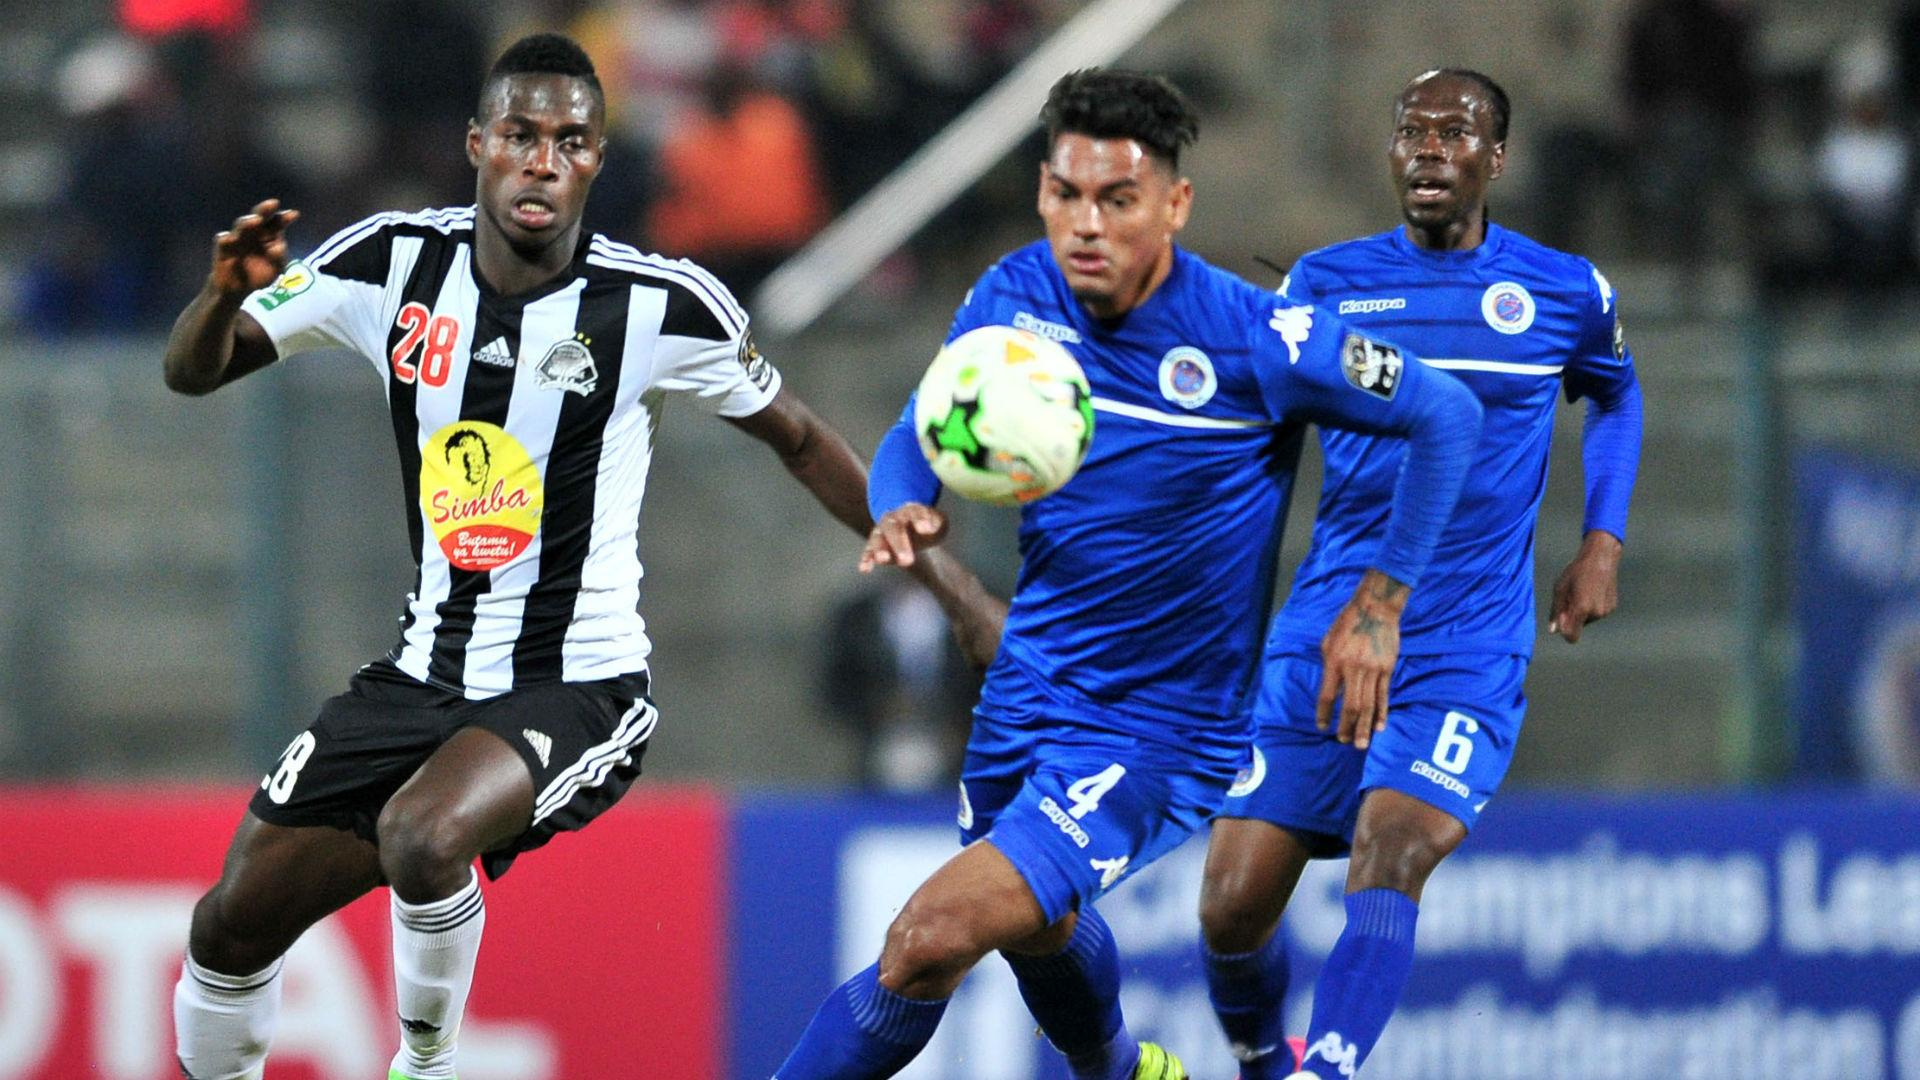 LIVE: TP Mazembe v SuperSport United | Soccer | Sporting News